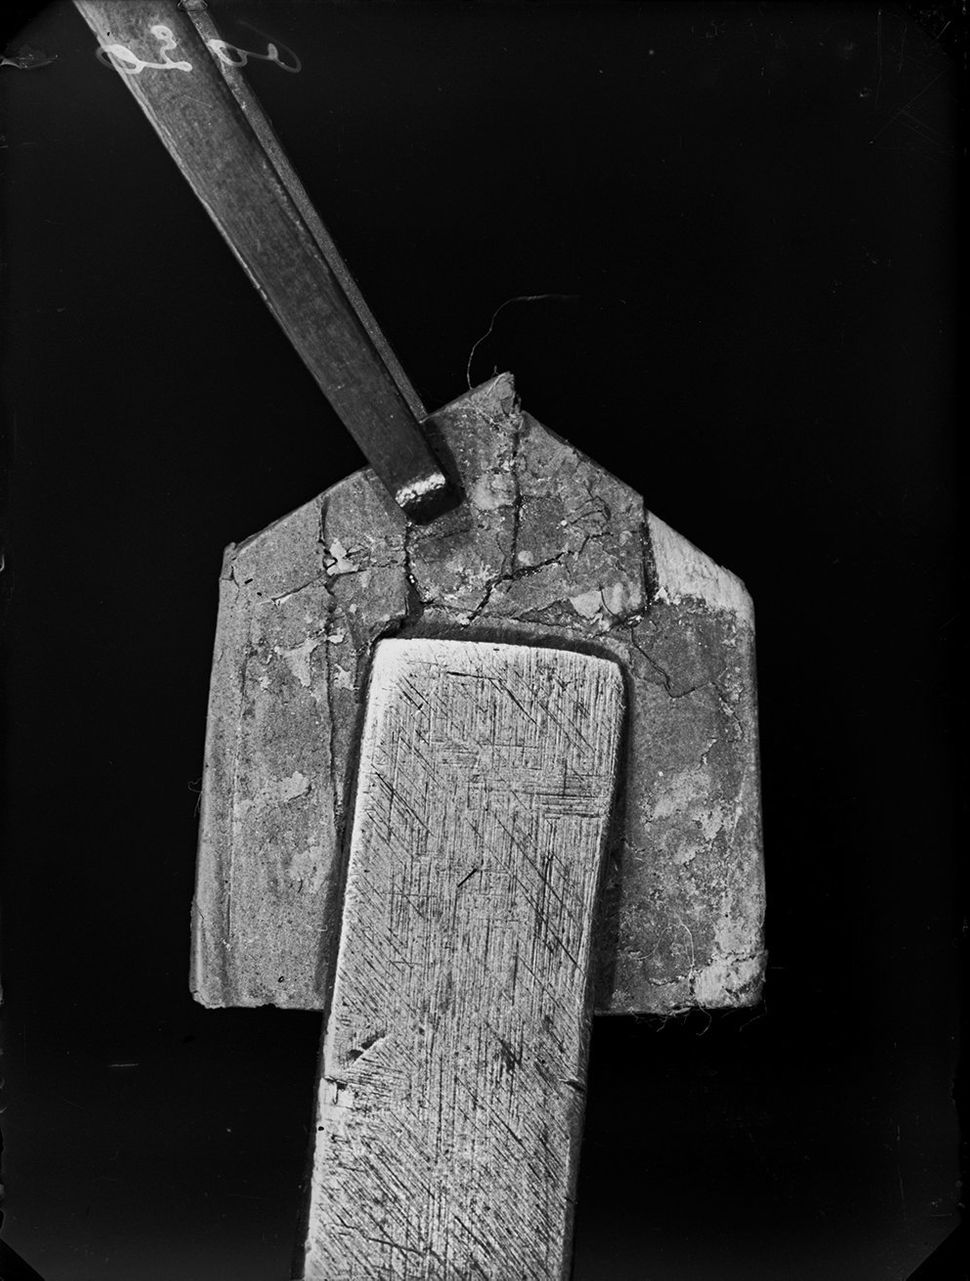 Superimposition of the tool on the fingerprint (extracted from a series of four images), Yverdon, Vaud, May 13 1912.